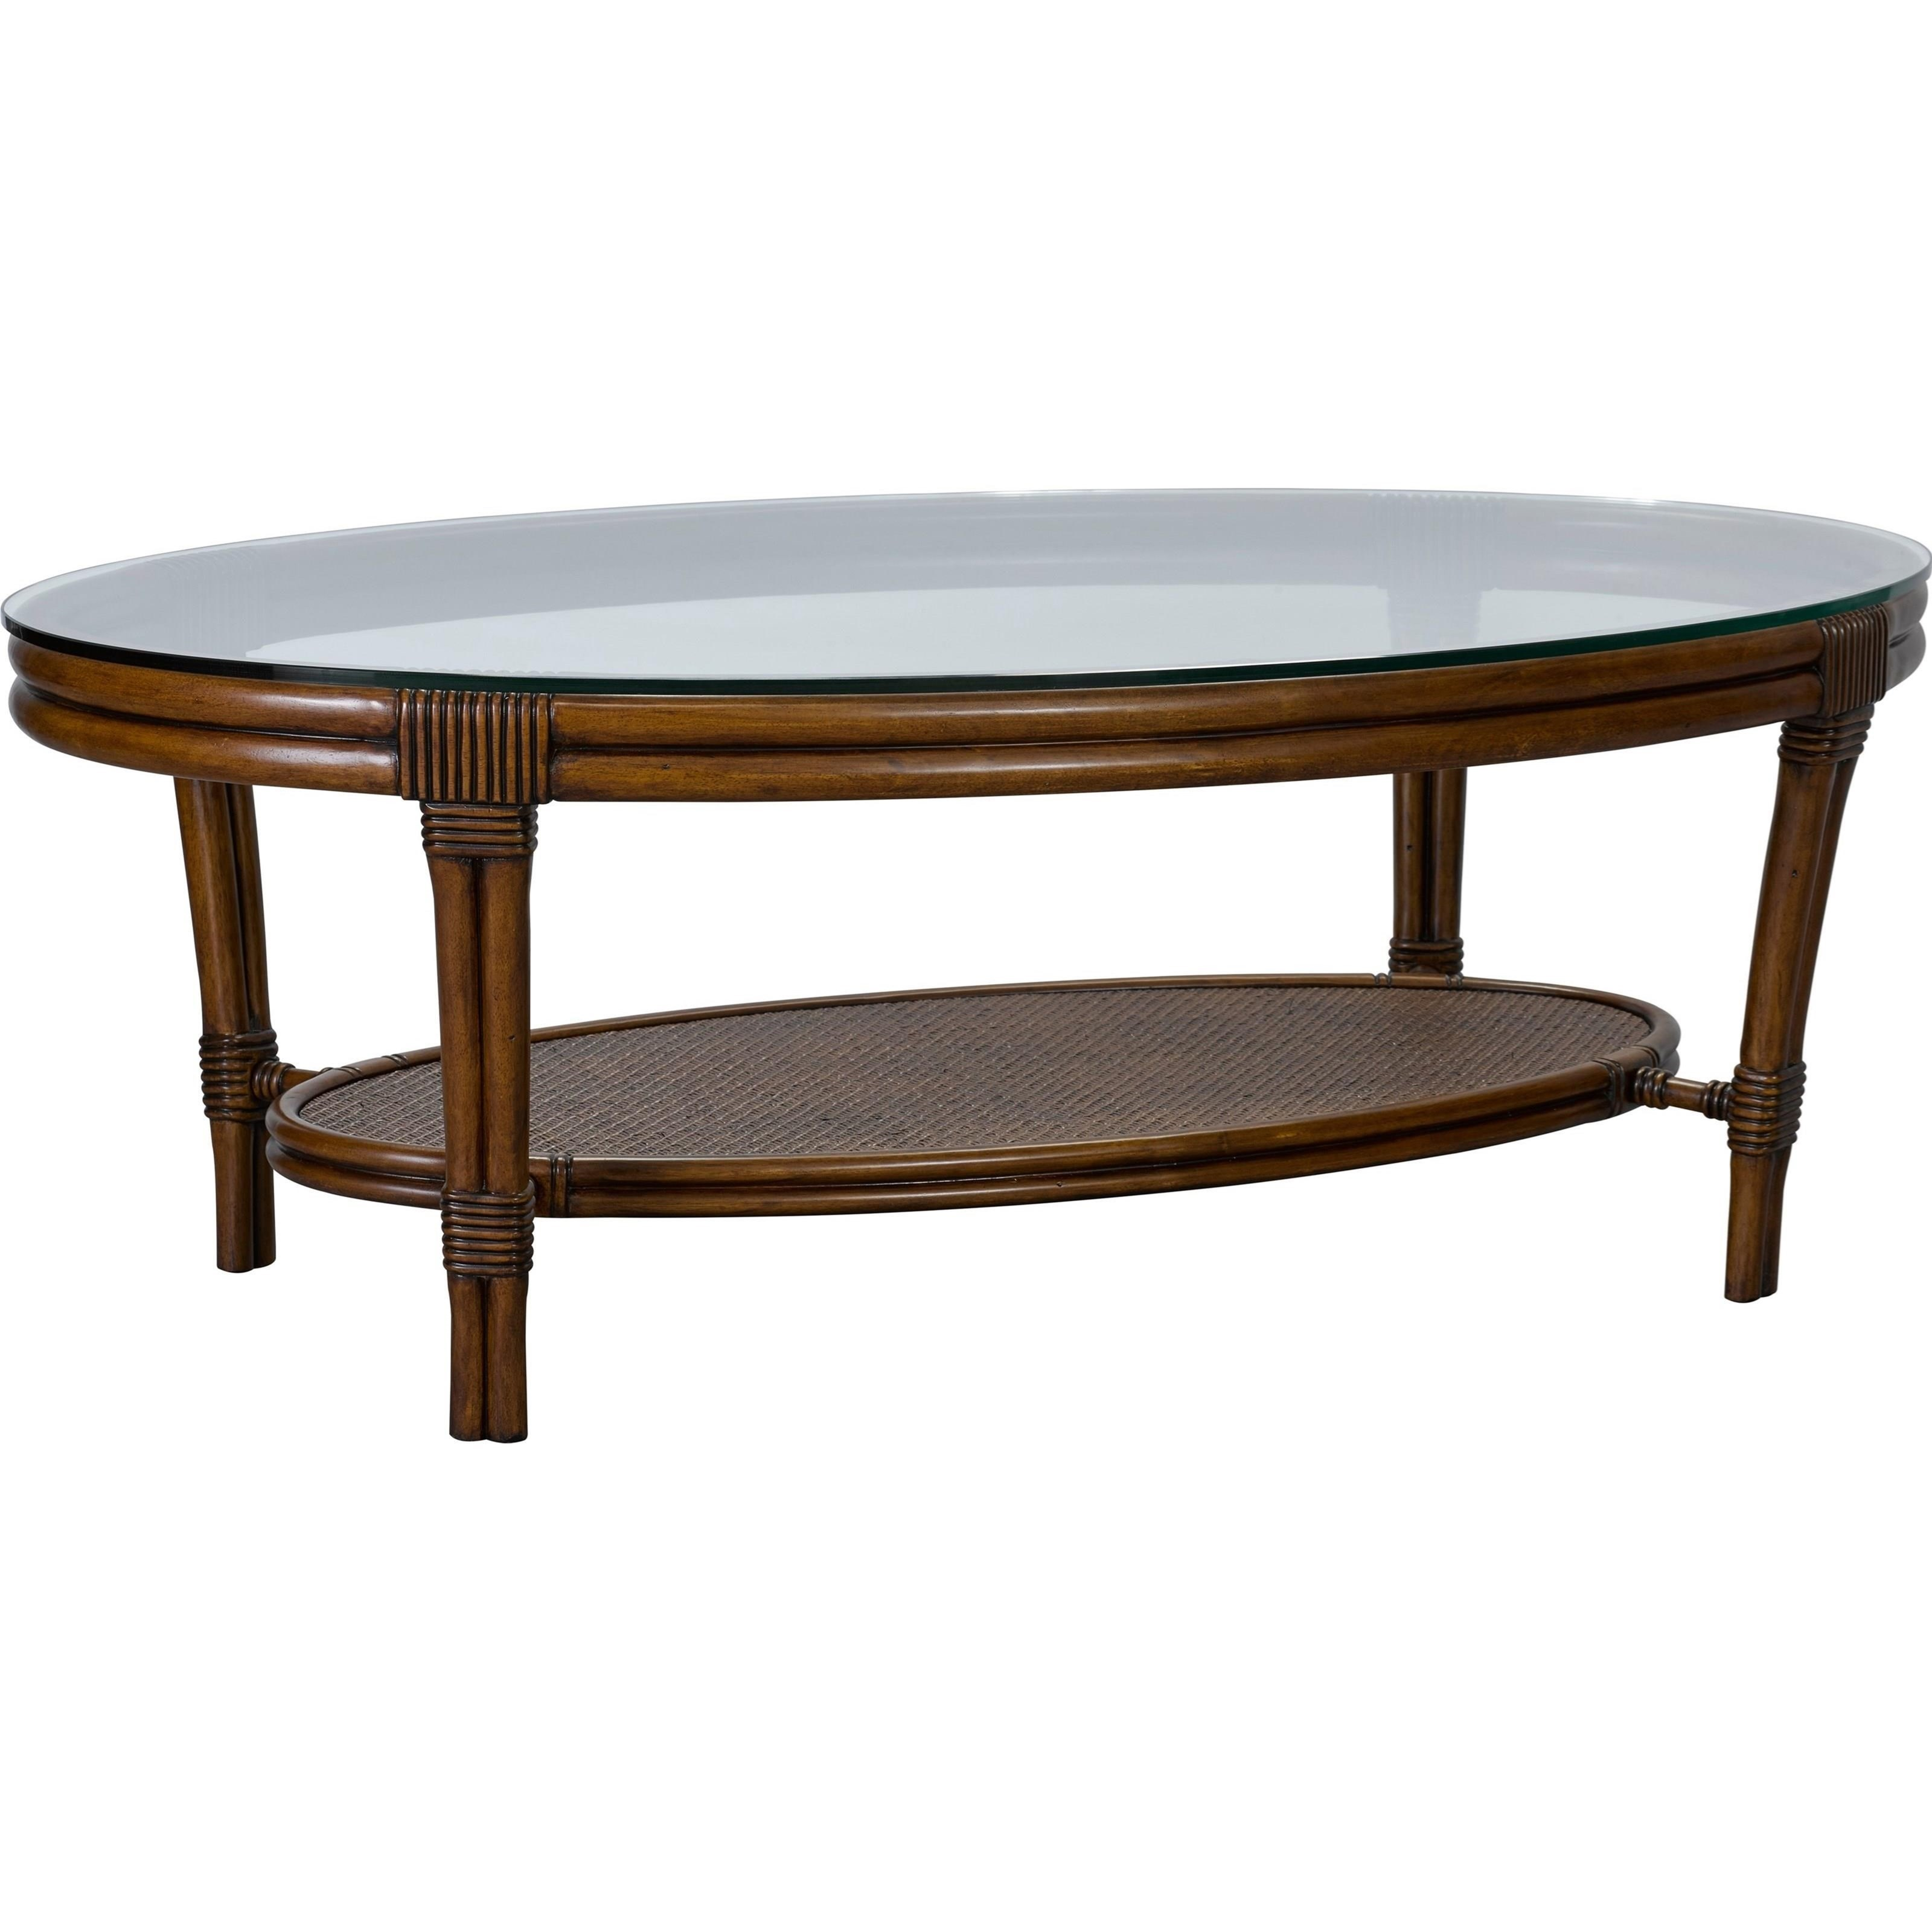 Broyhill Furniture Amalie Bay Oval Cocktail Table - Item Number: 4548-003